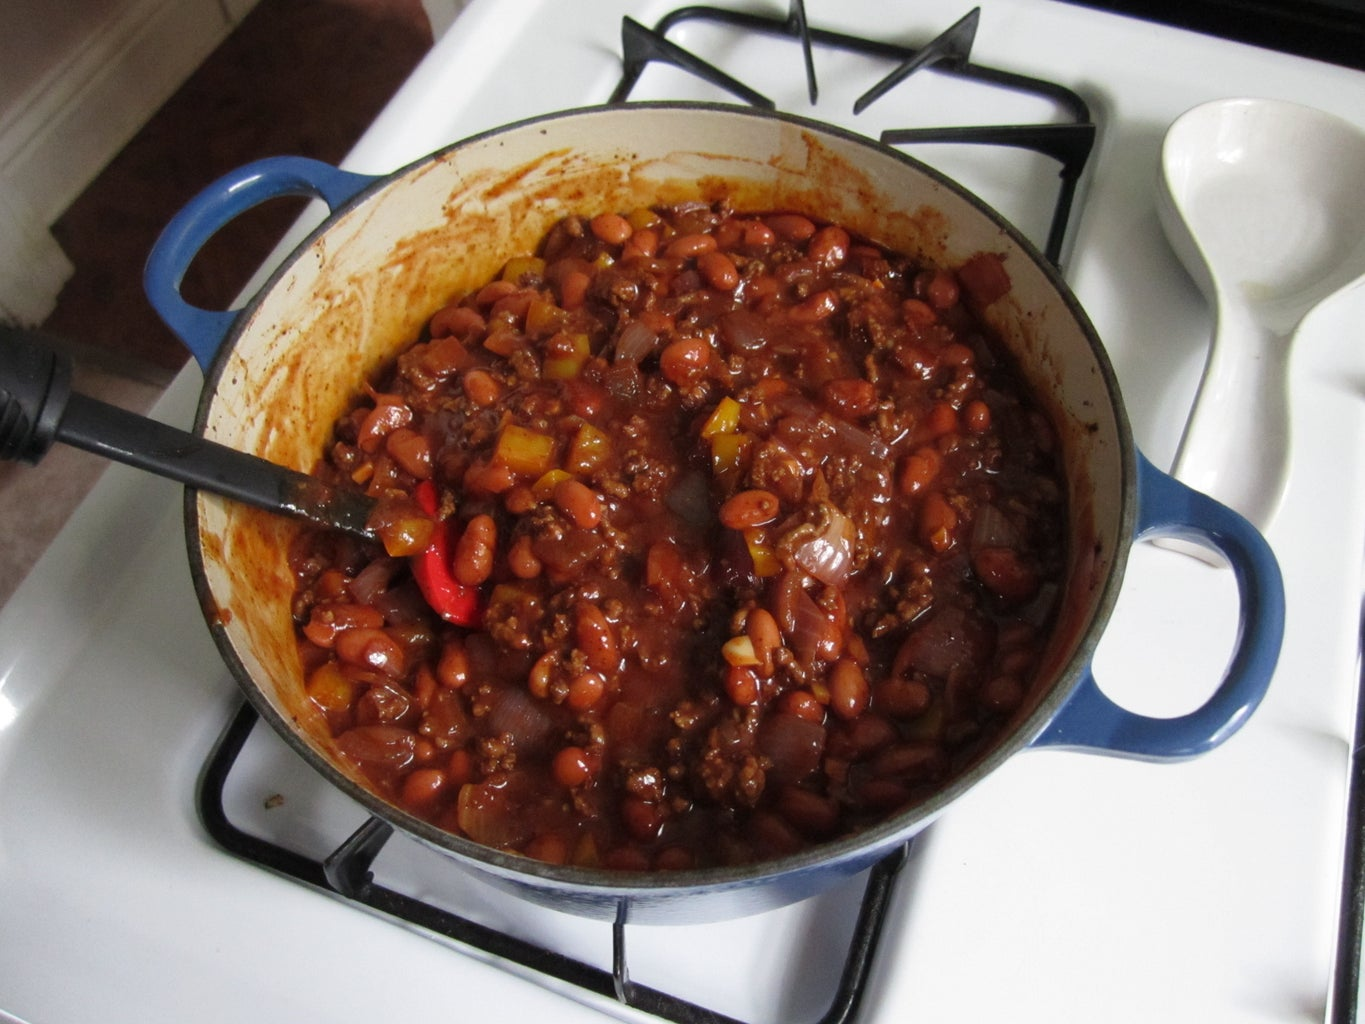 Add the Beans, Tomato Sauce and Beer!